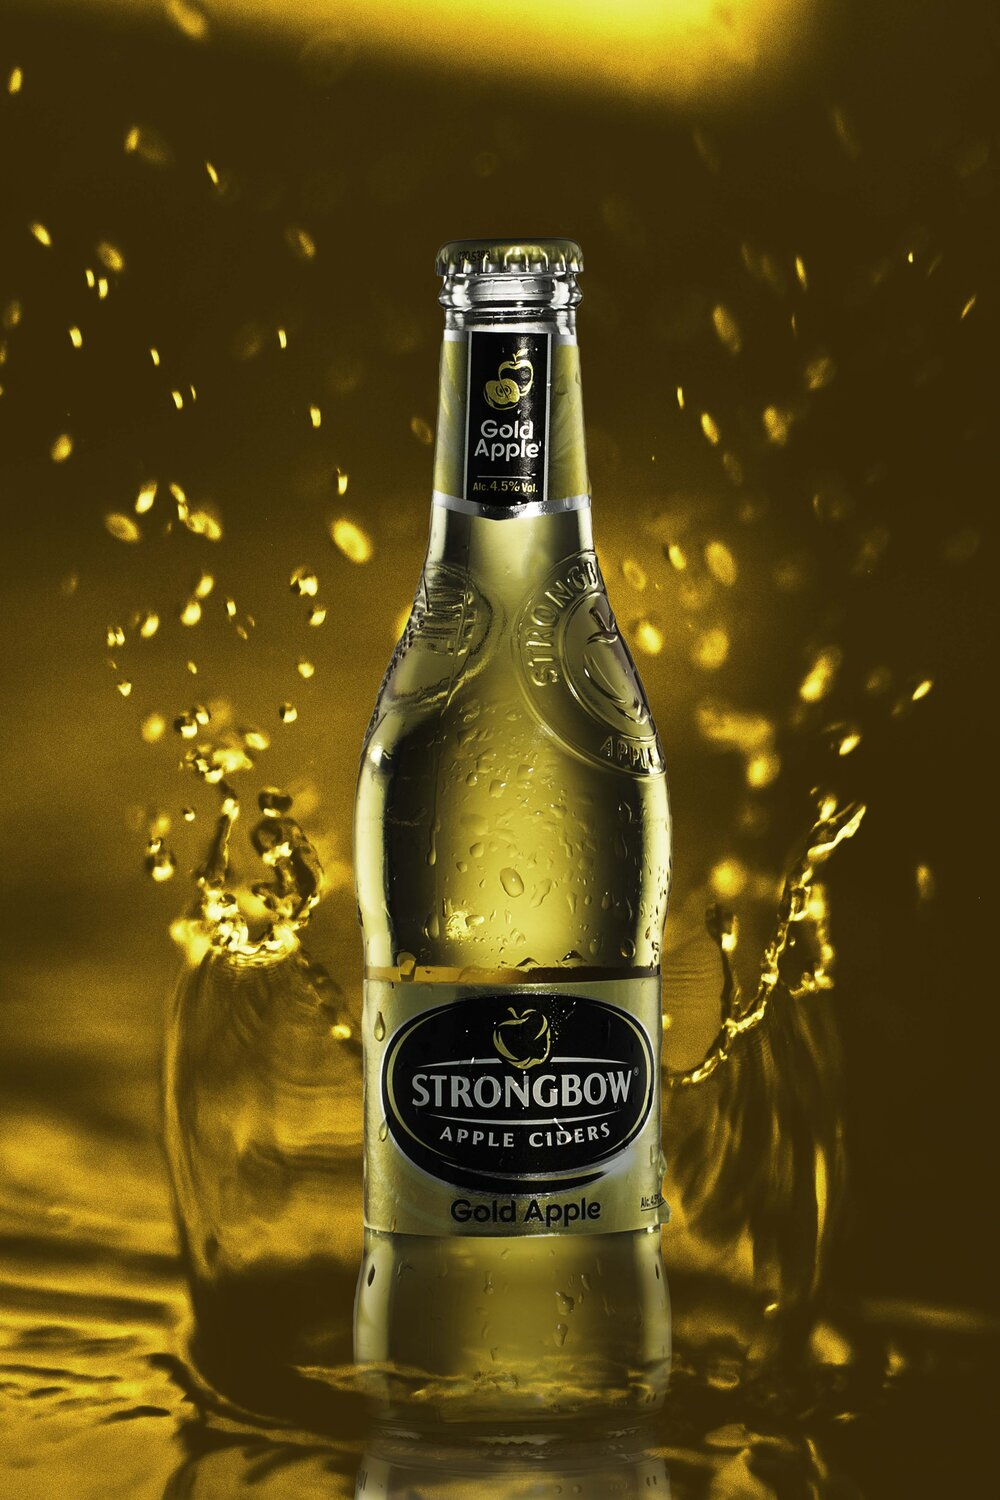 Strongbow Apple Ciders 1